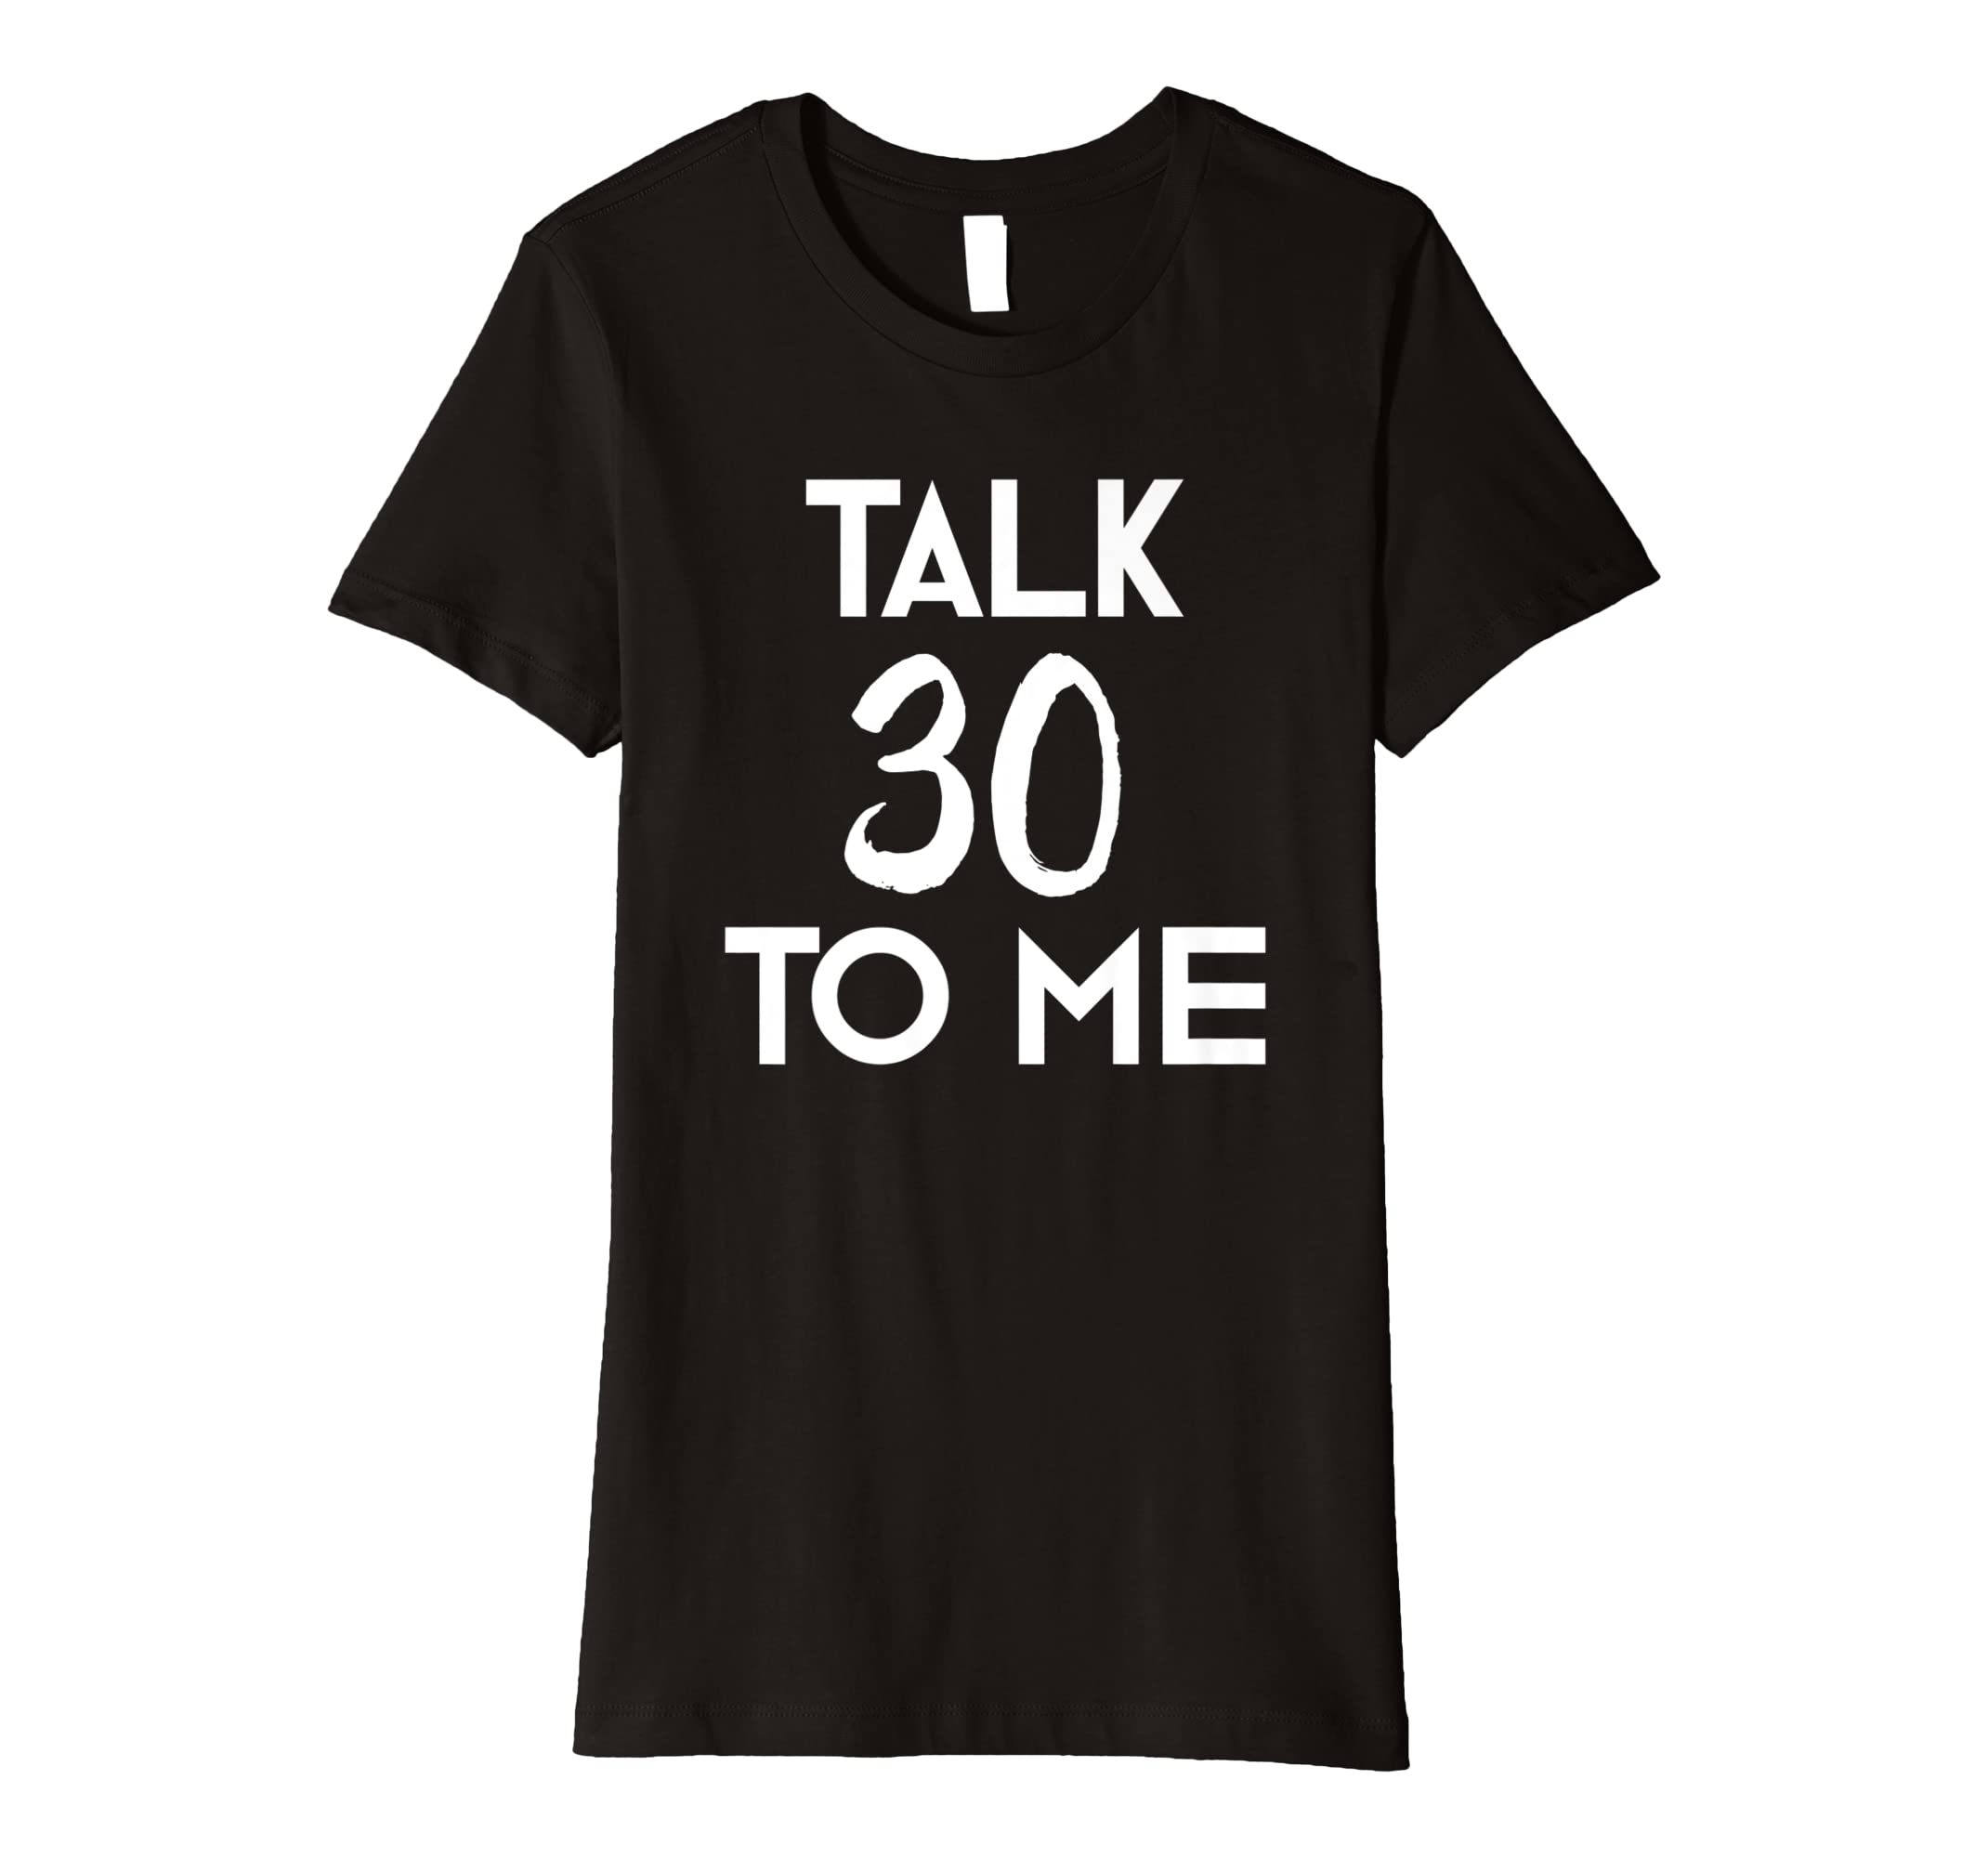 d4c8322c2 Amazon.com: 30th Birthday Gift T-Shirt Funny Talk 30 To Me Tee Him Her:  Clothing